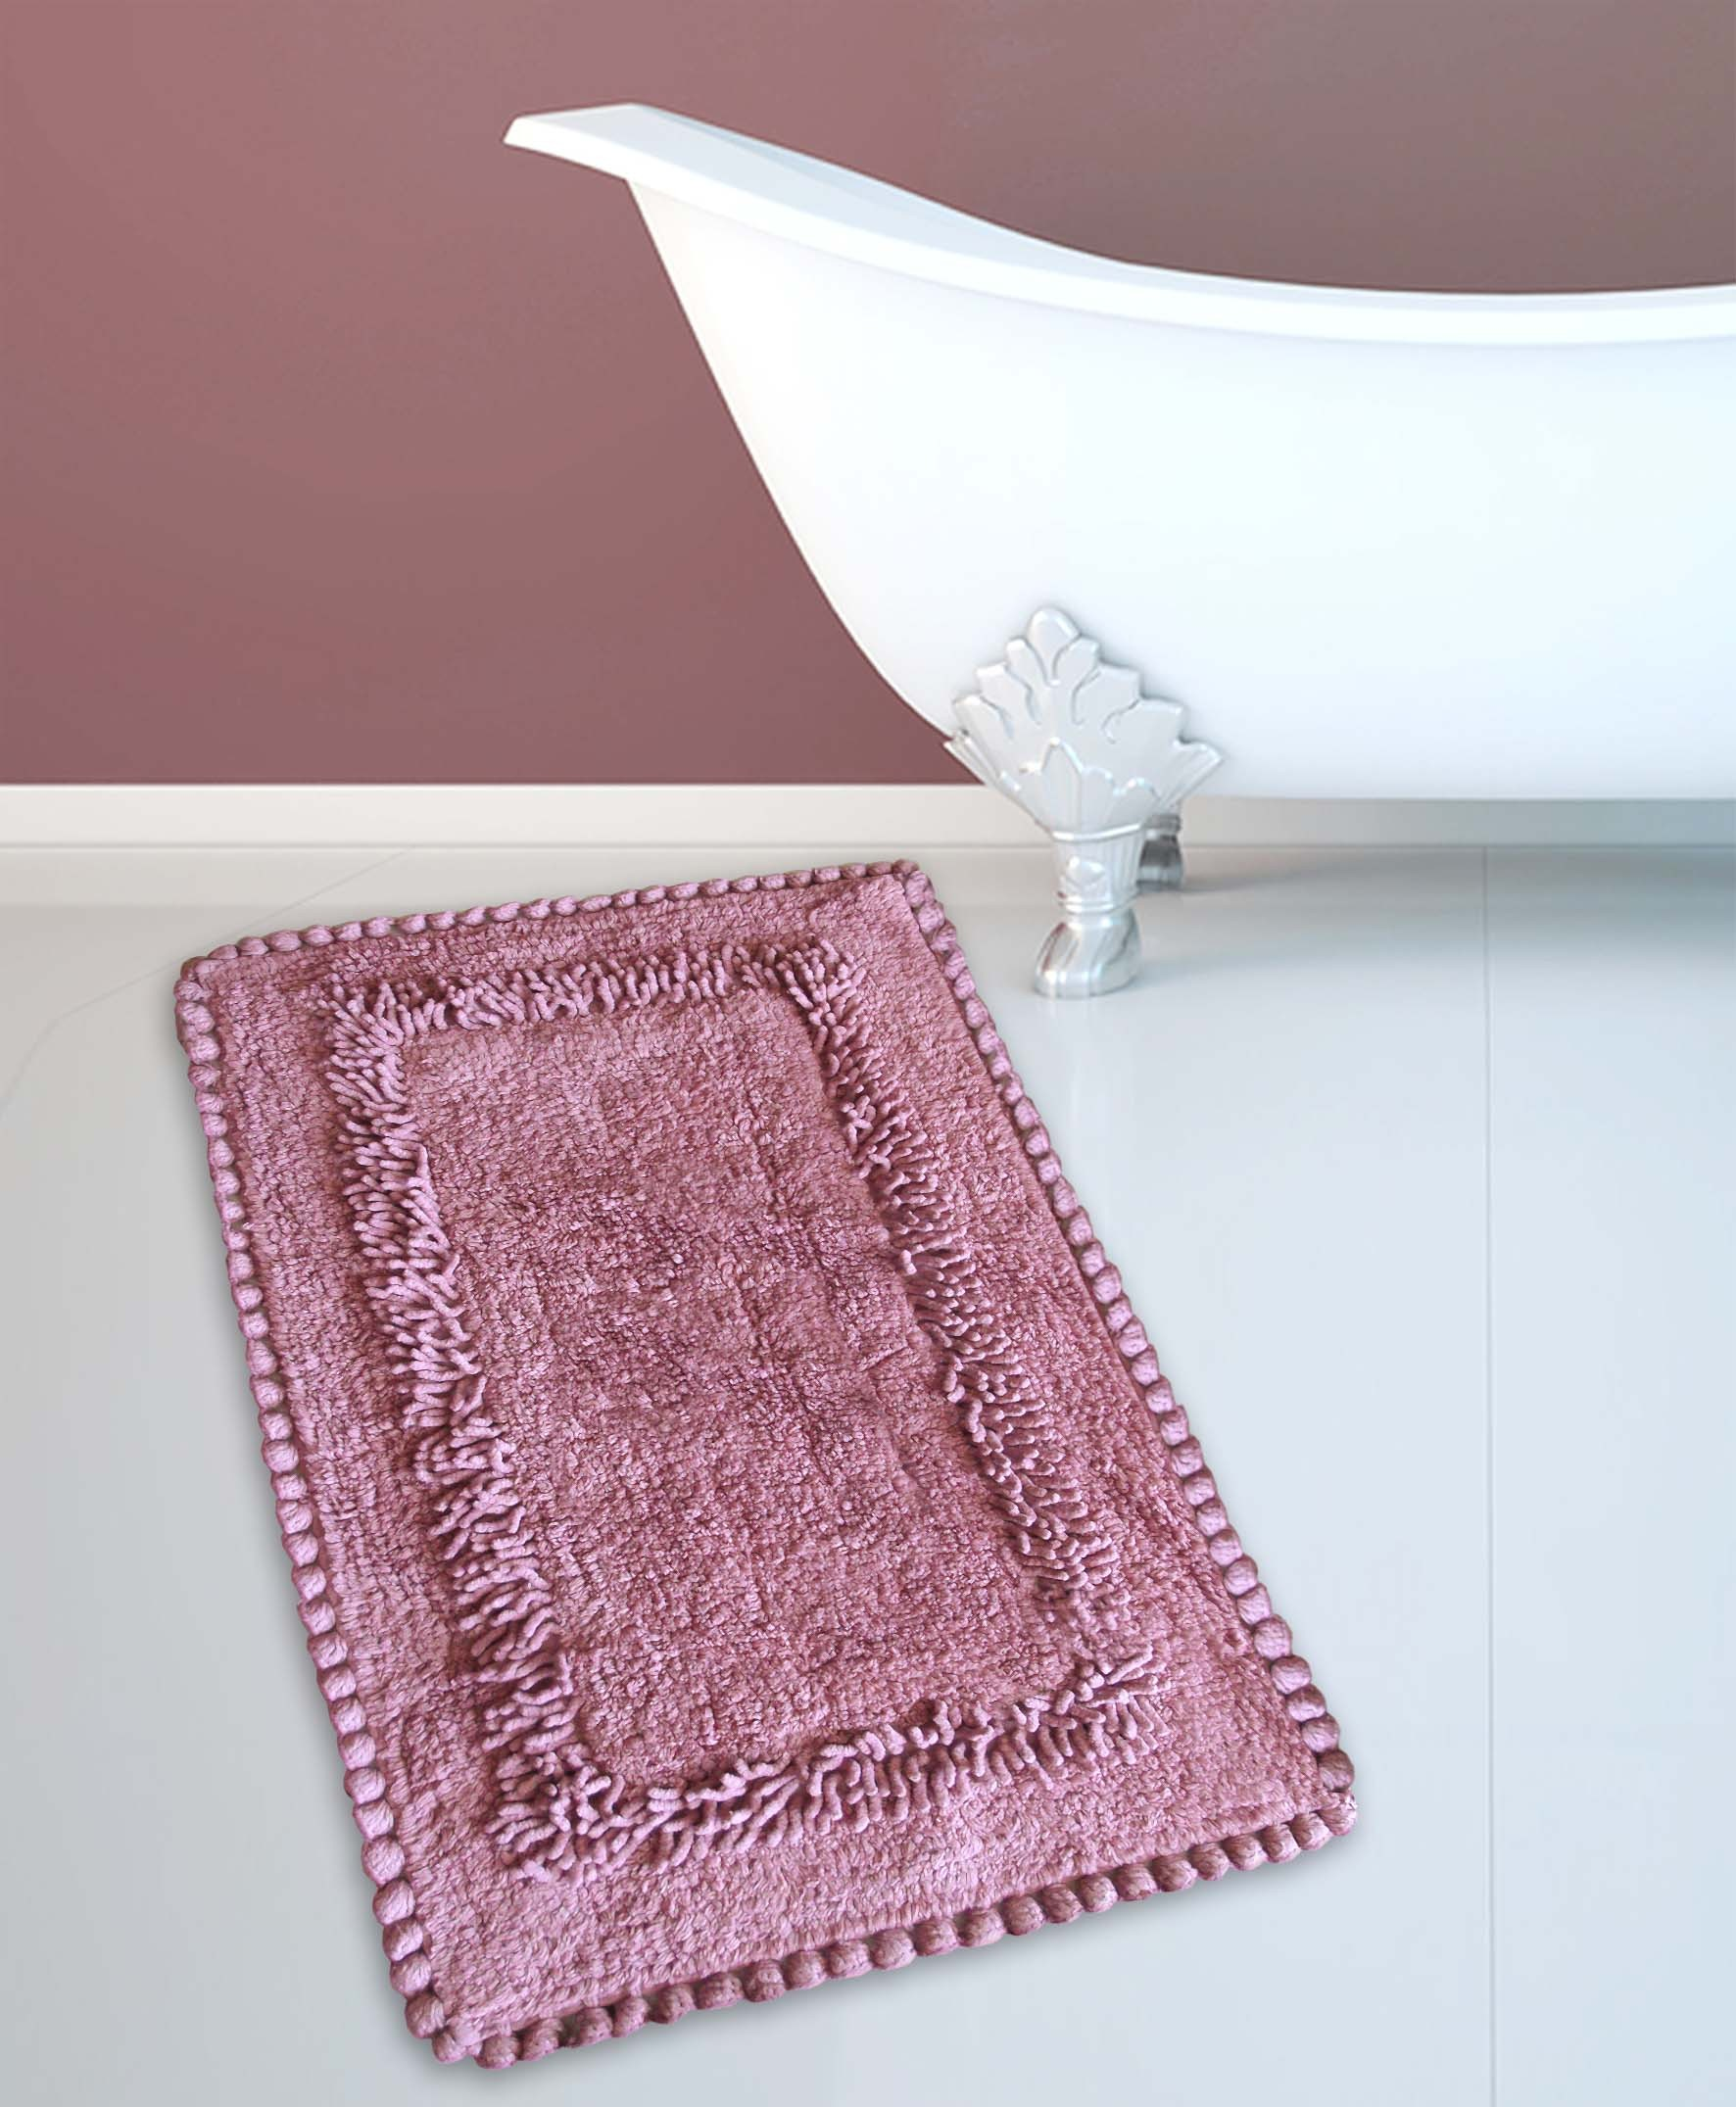 Ταπέτο Μπάνιου San Lorentzo 923 Crochet Dusty Rose 50×80